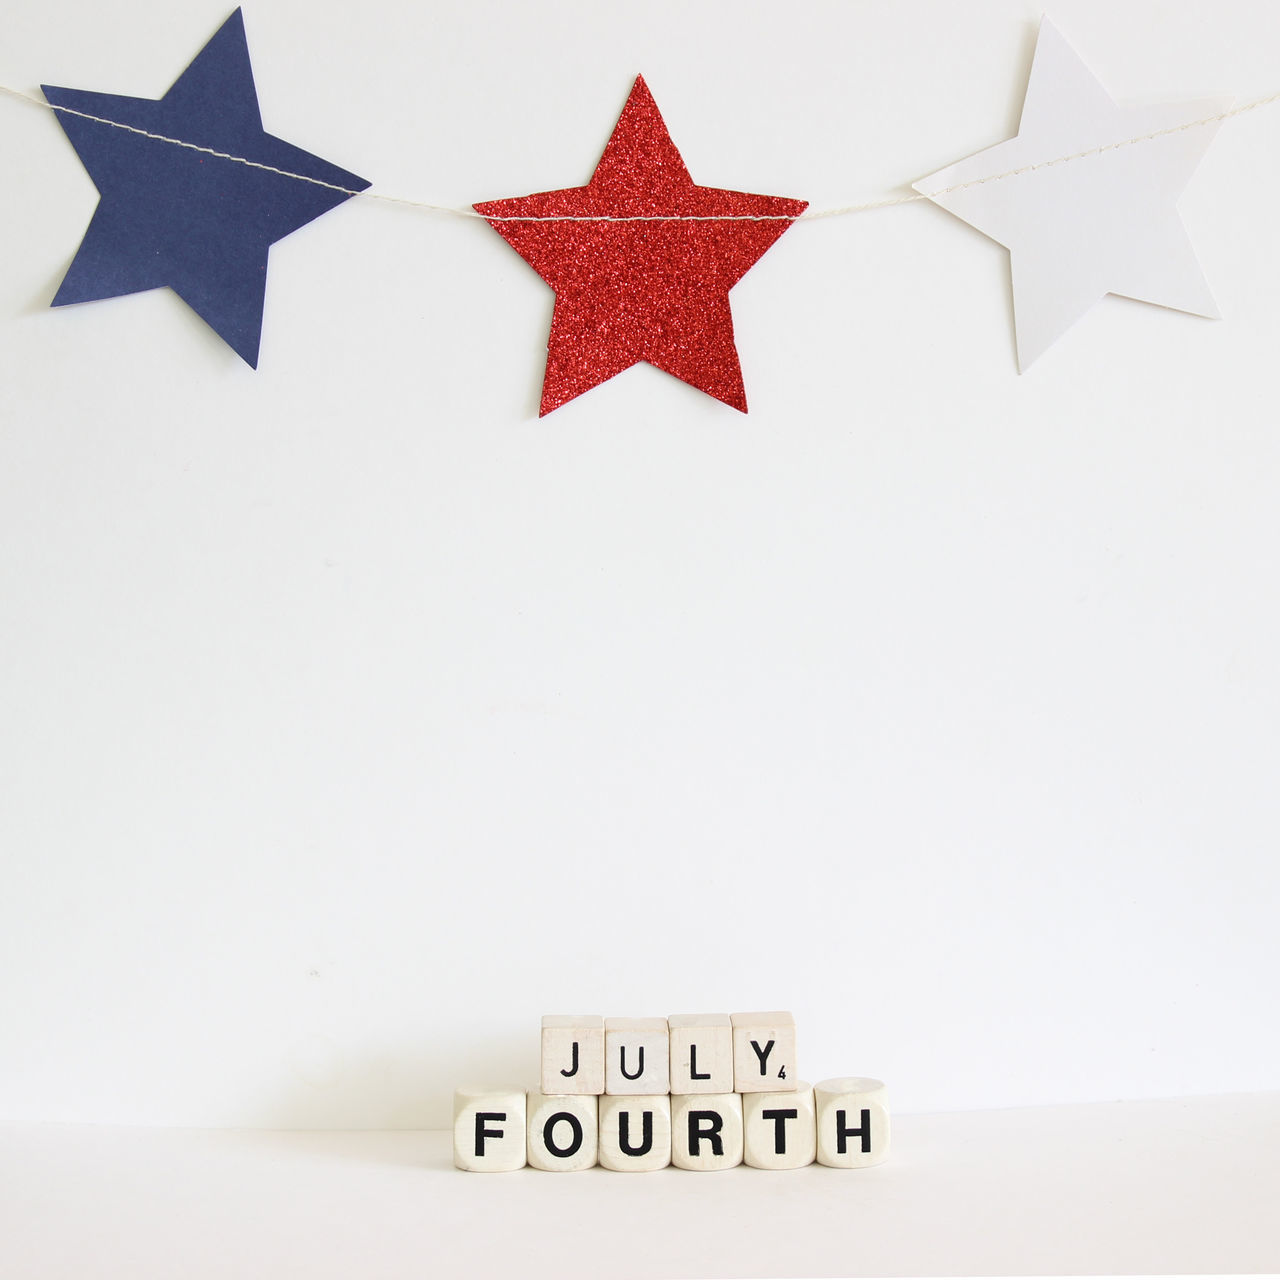 July And Fourth Blocks On Table Against Wall With Decoration